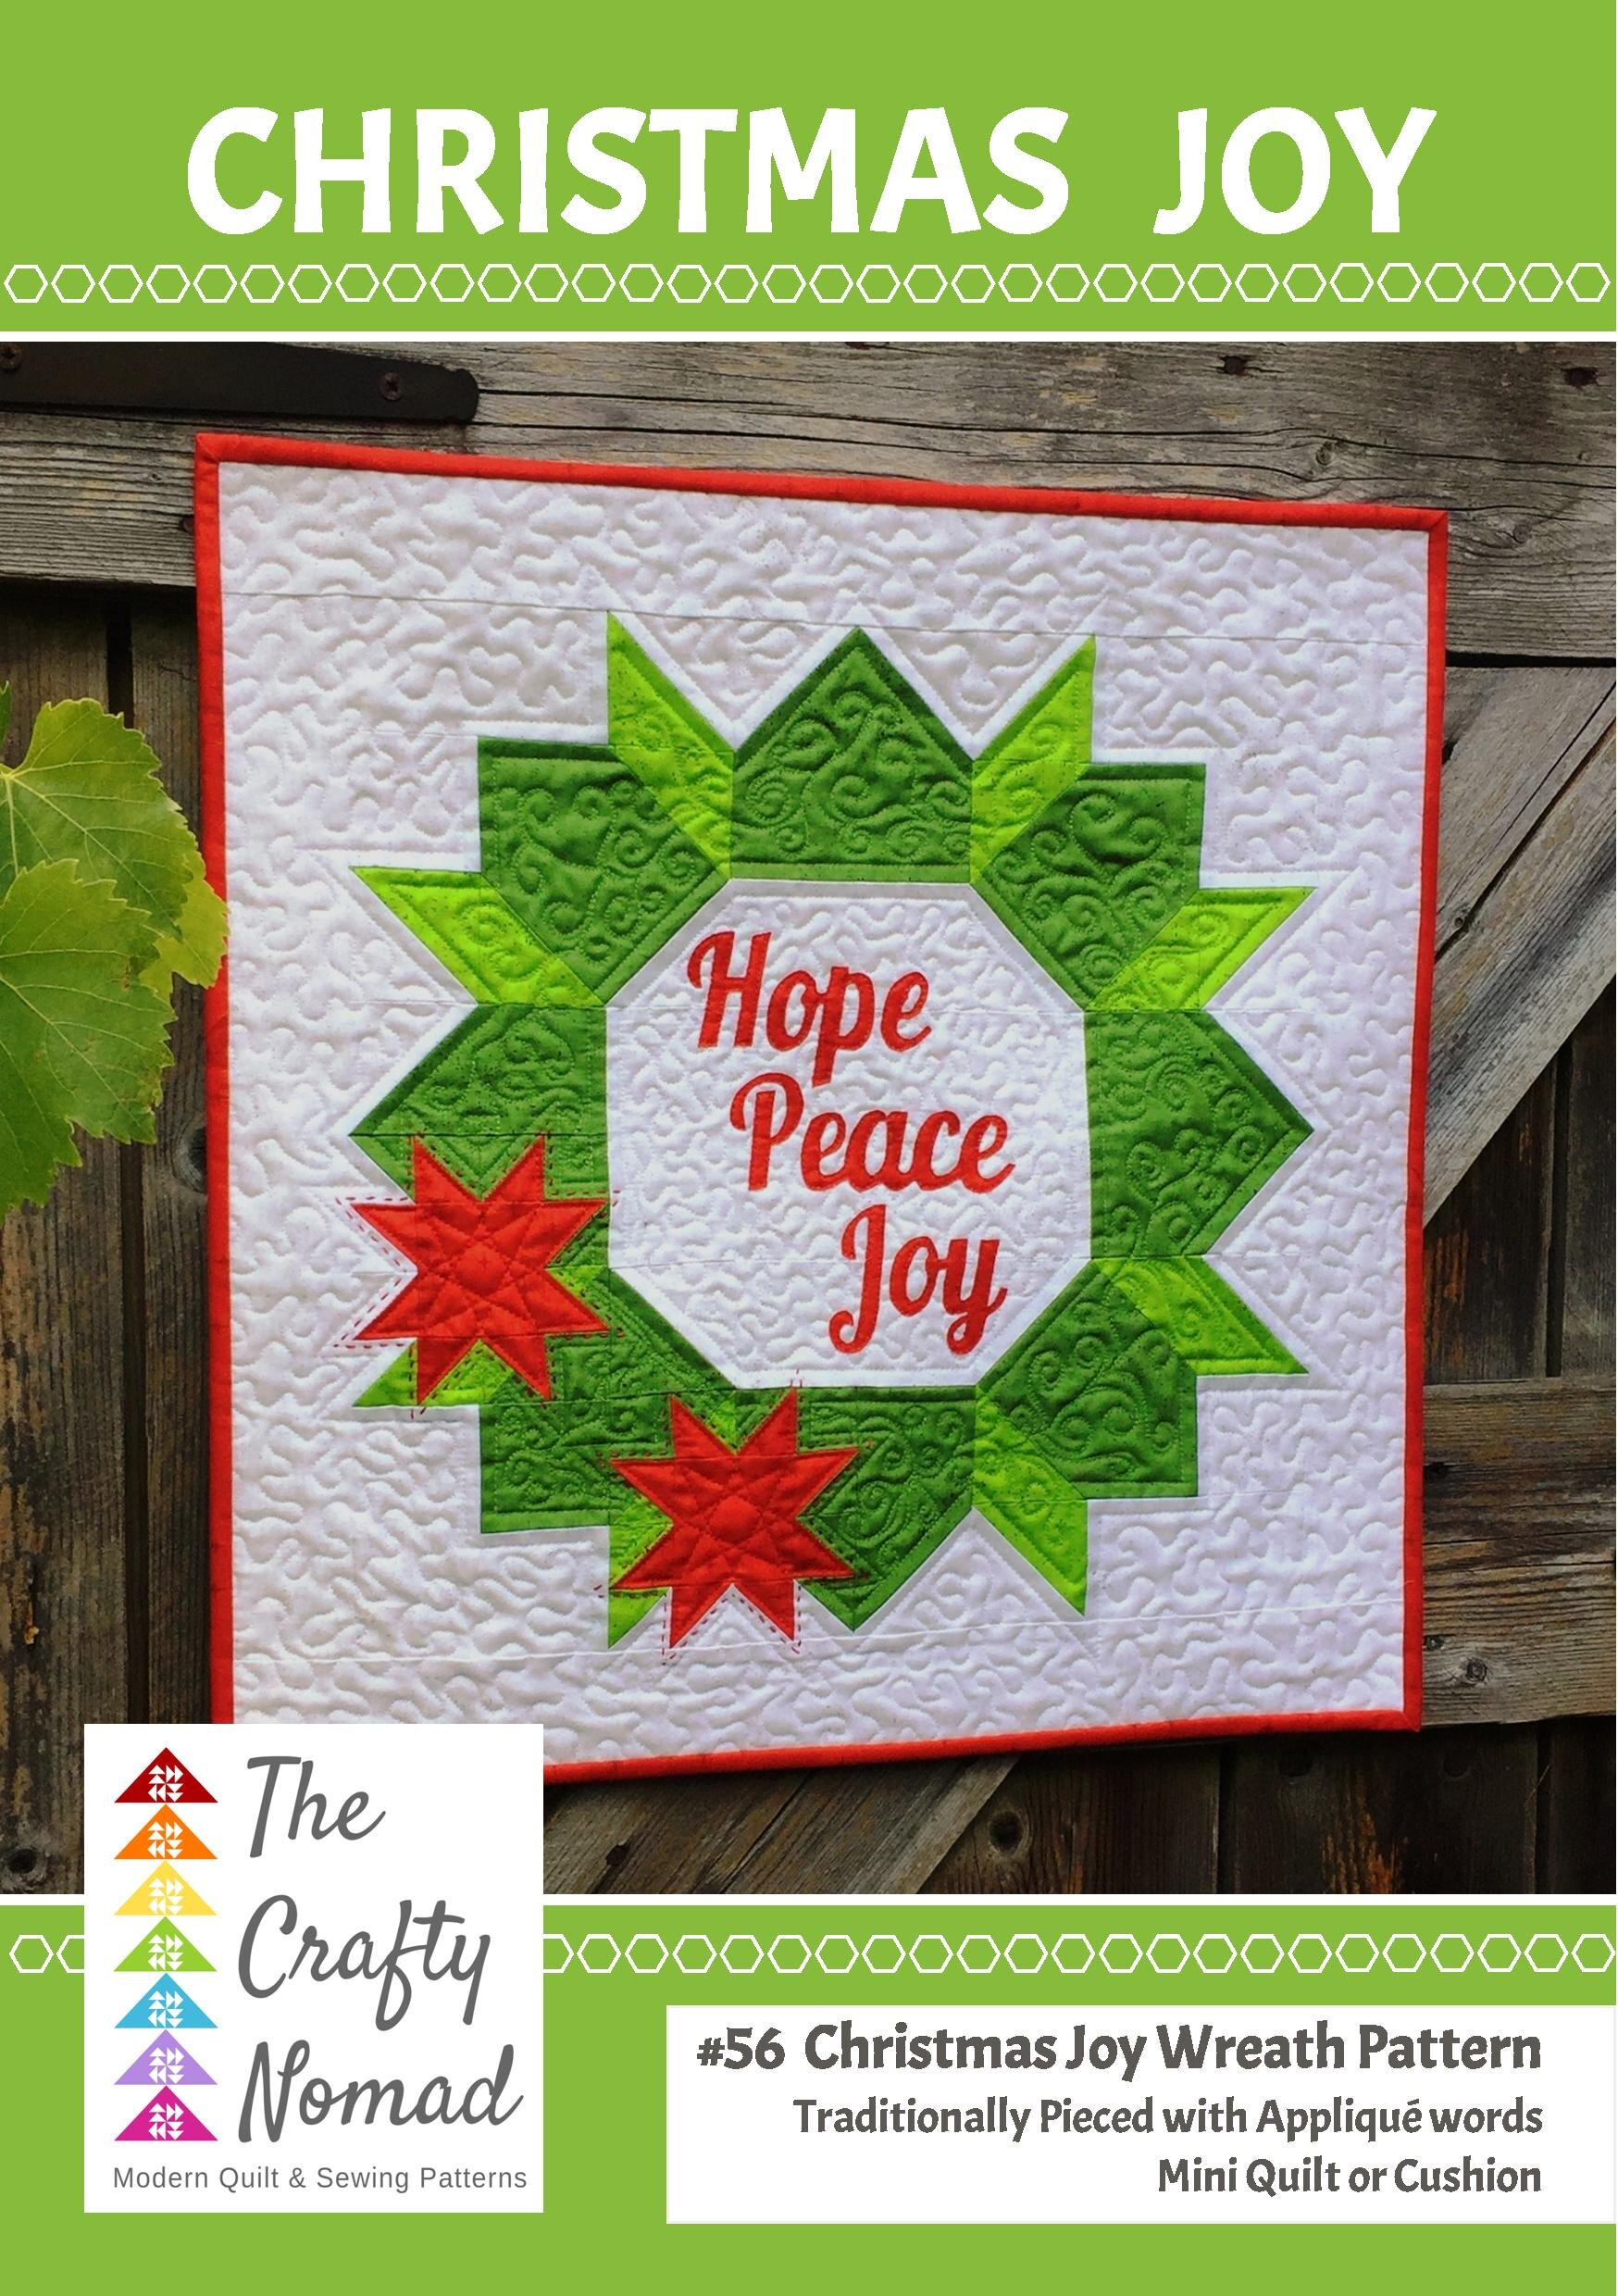 Christmas Joy Pattern The Crafty Nomad PDF.jpg